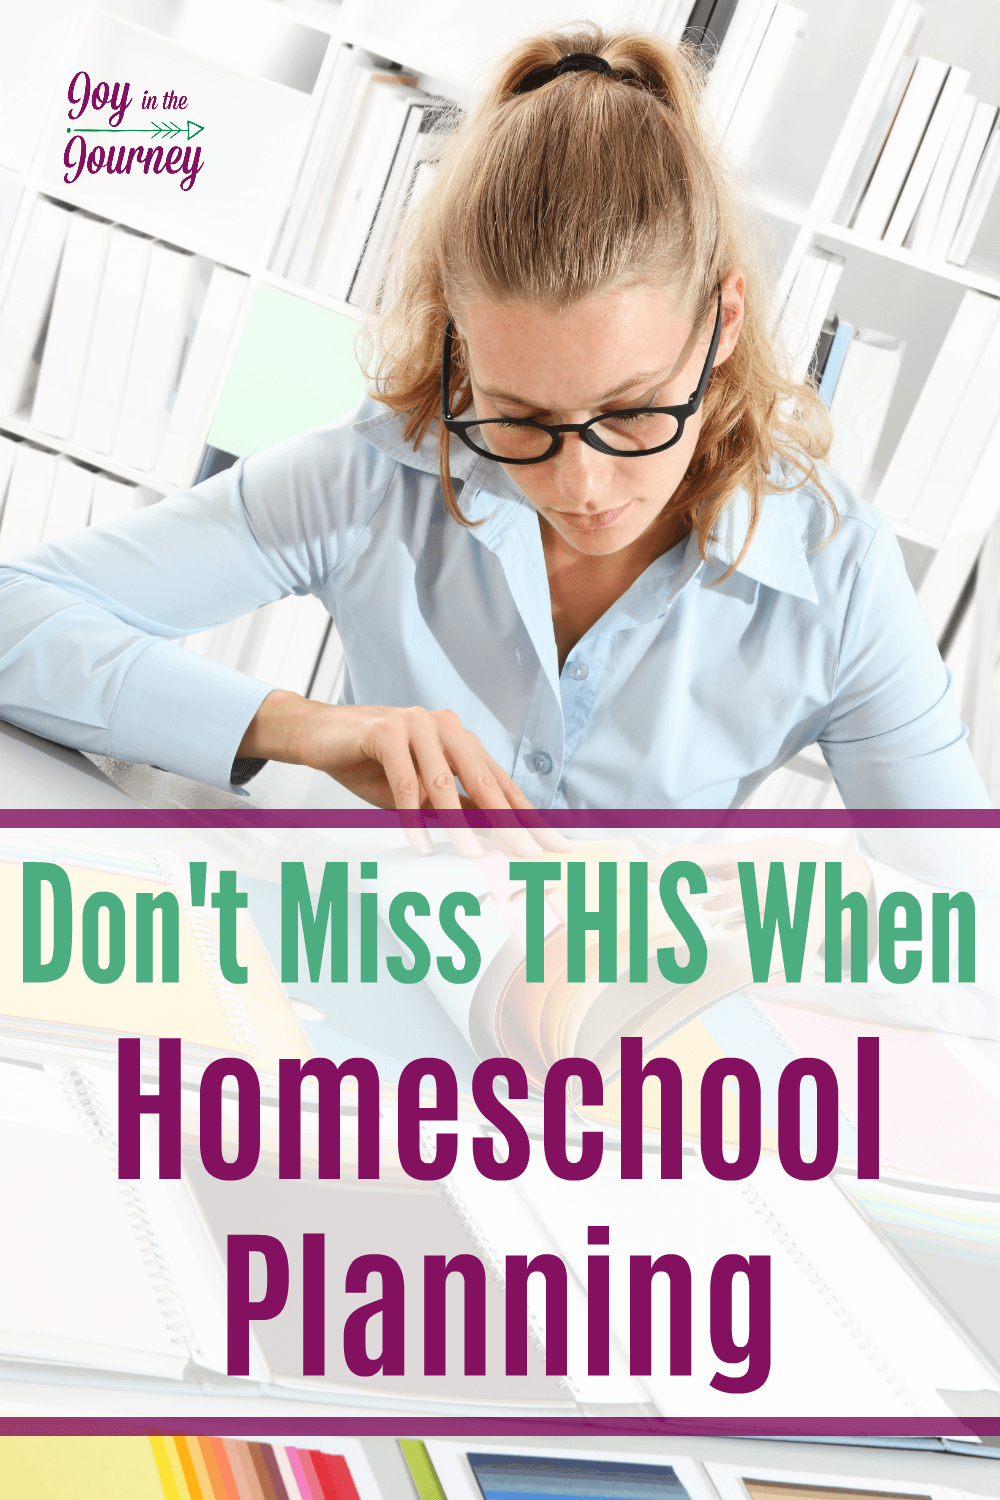 The #1 thing we miss when homeschool planning is this. I've done it, more than once and chances are you have too. Read before you start homeschool planning.